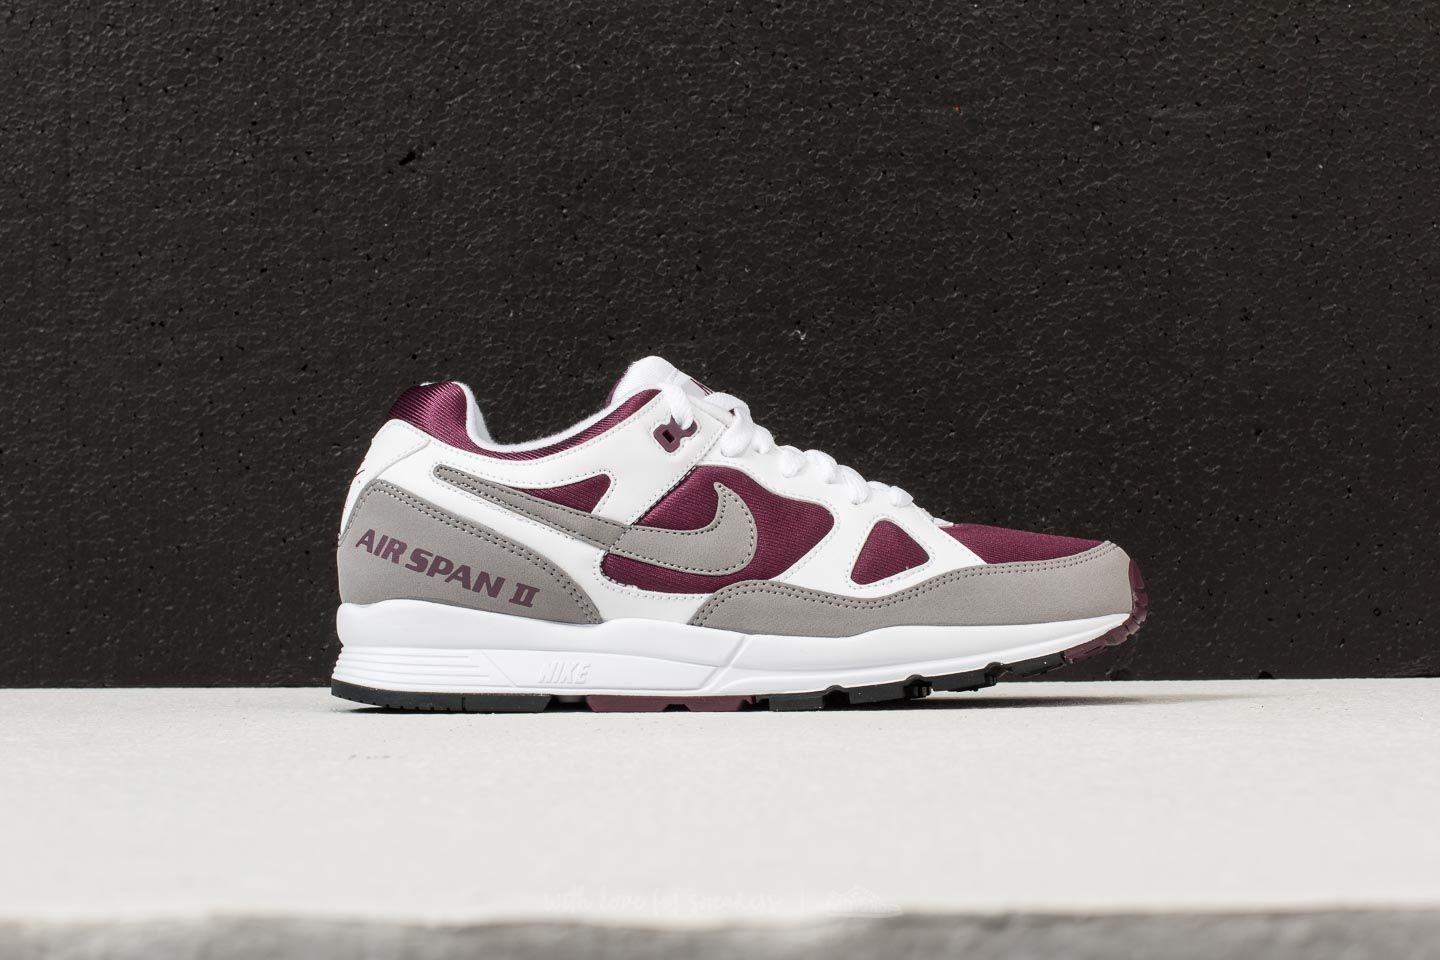 newest 785a9 61f2b Lyst - Nike Air Span Ii White  Dust-bordeaux-black in Black for Men